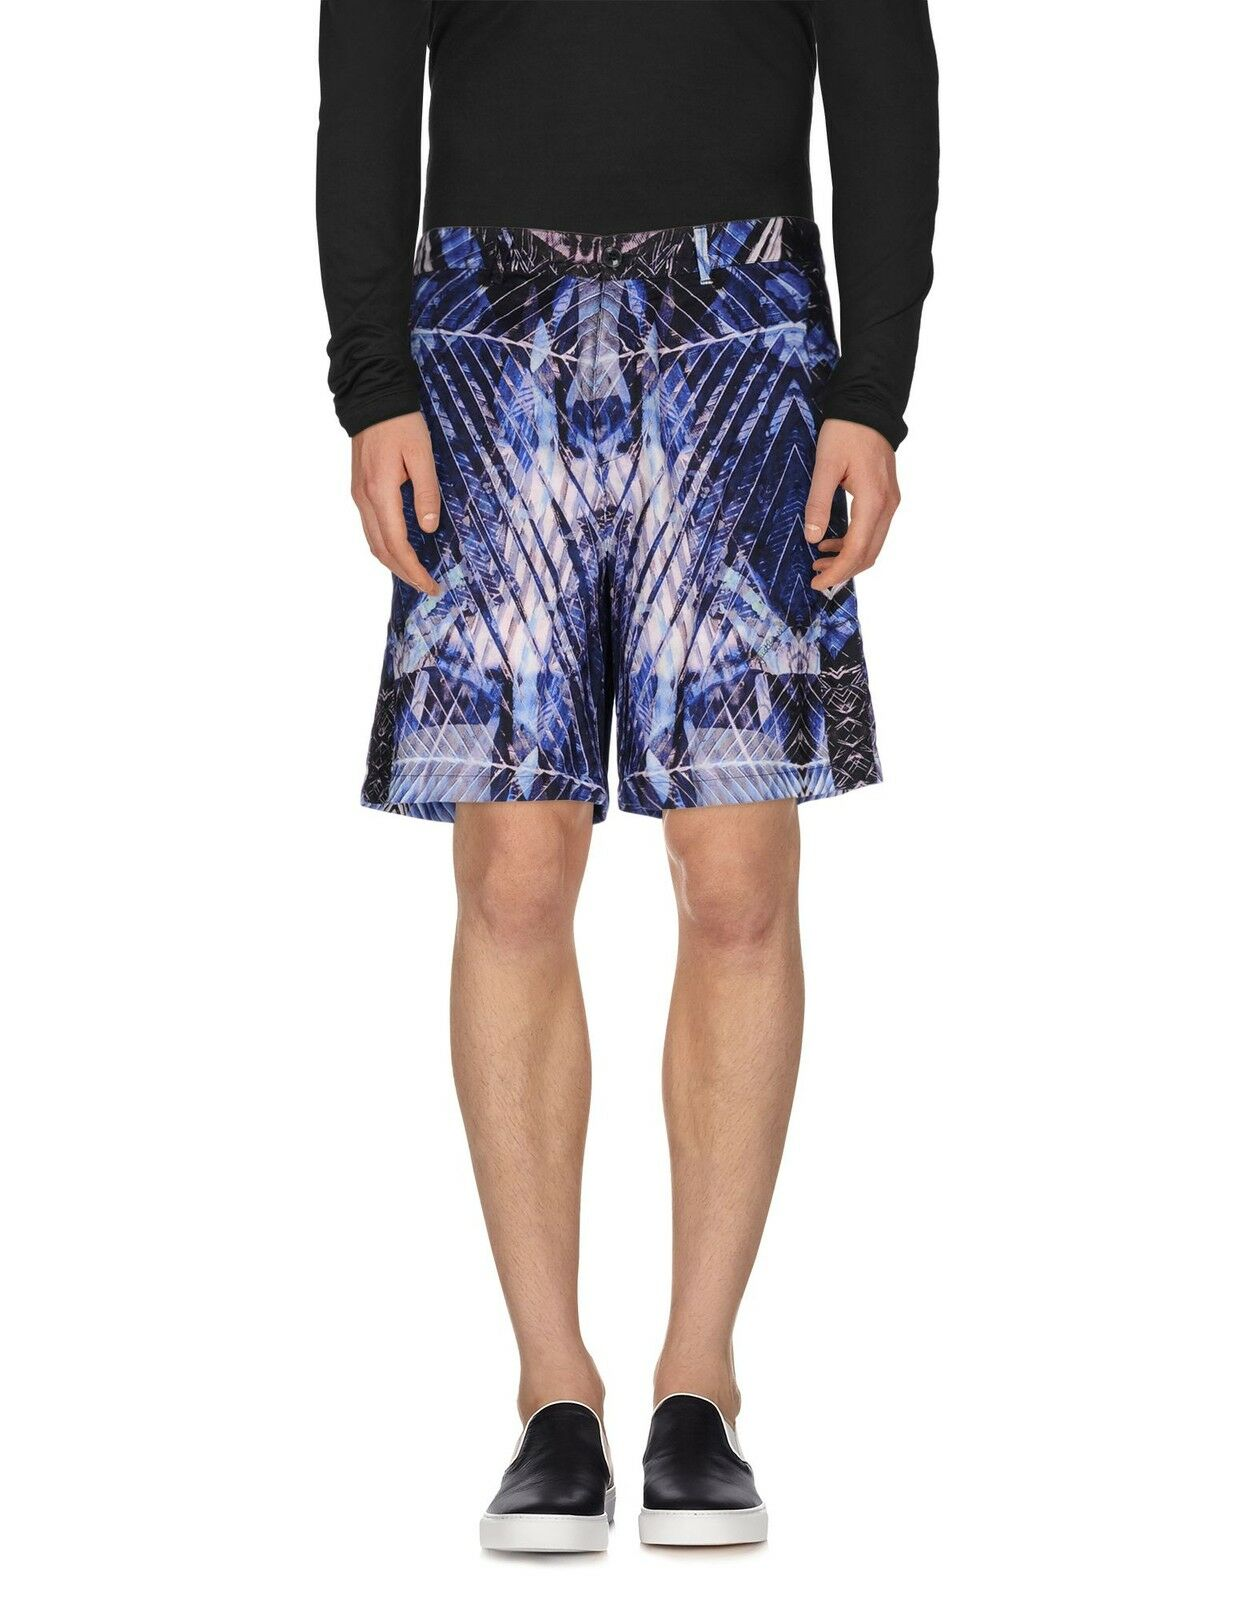 JUST CAVALLI Mens bluee Printed Poplin Cotton Bermuda Shorts UK32 IT48 W32 NEW